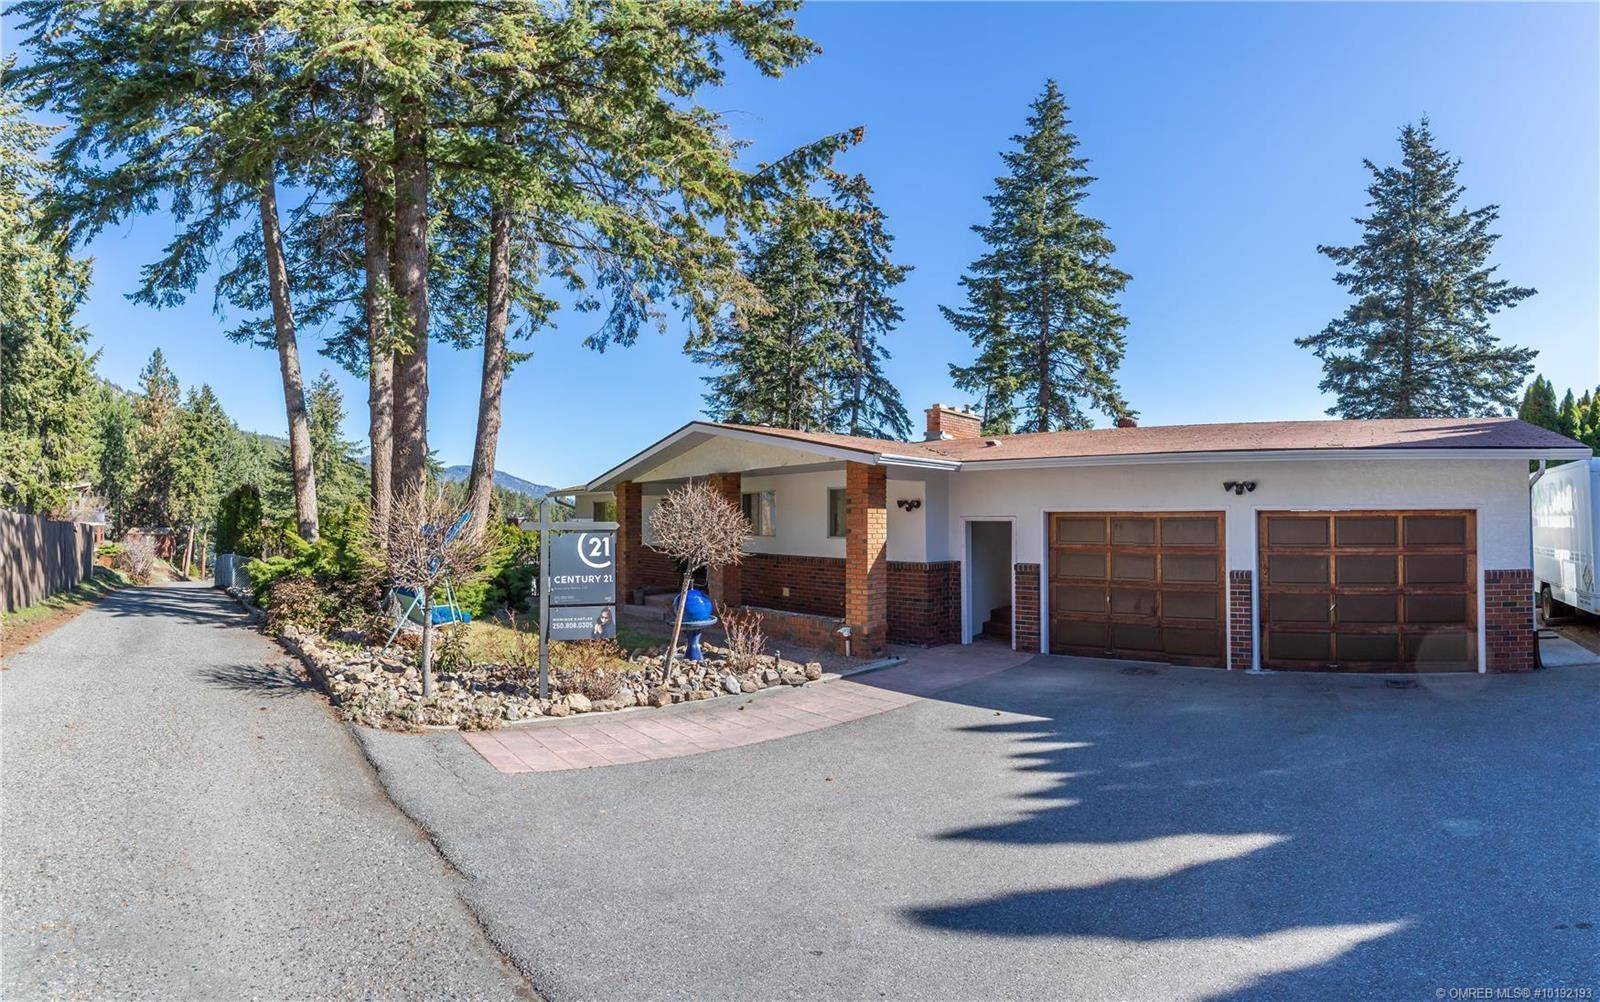 House for sale at 1554 Mcnaughton Rd West Kelowna British Columbia - MLS: 10192193